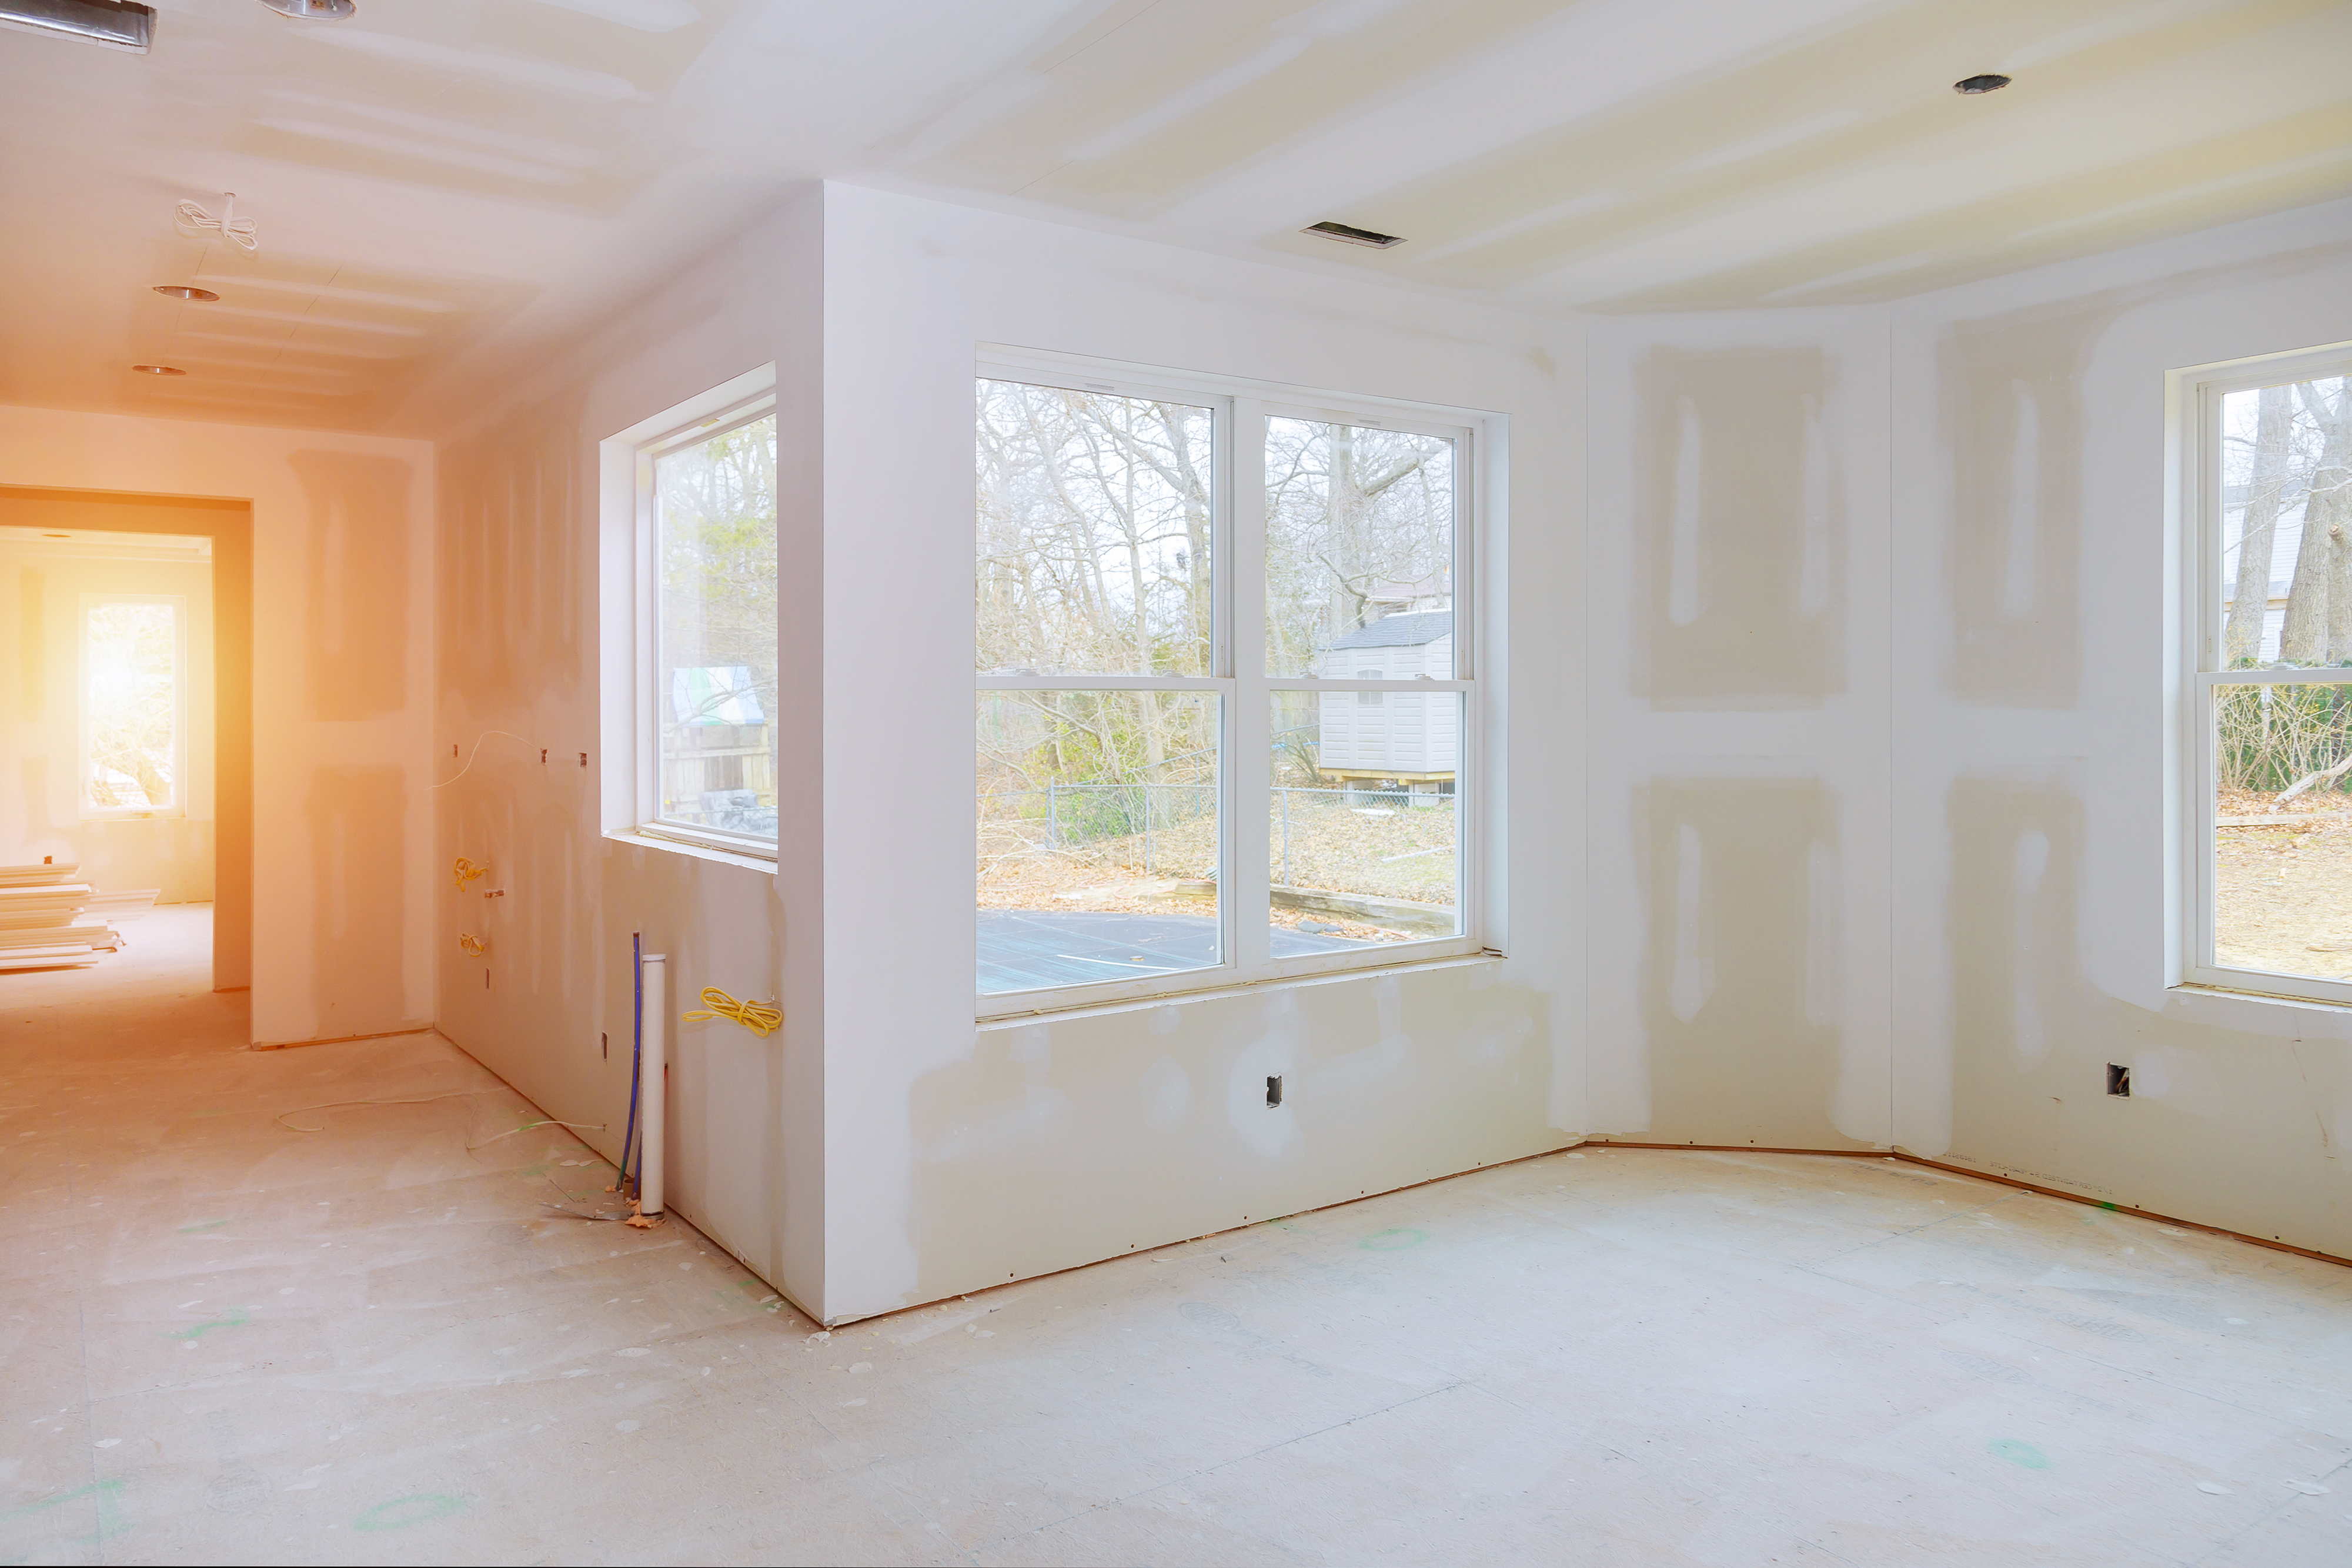 Walls With Drywall